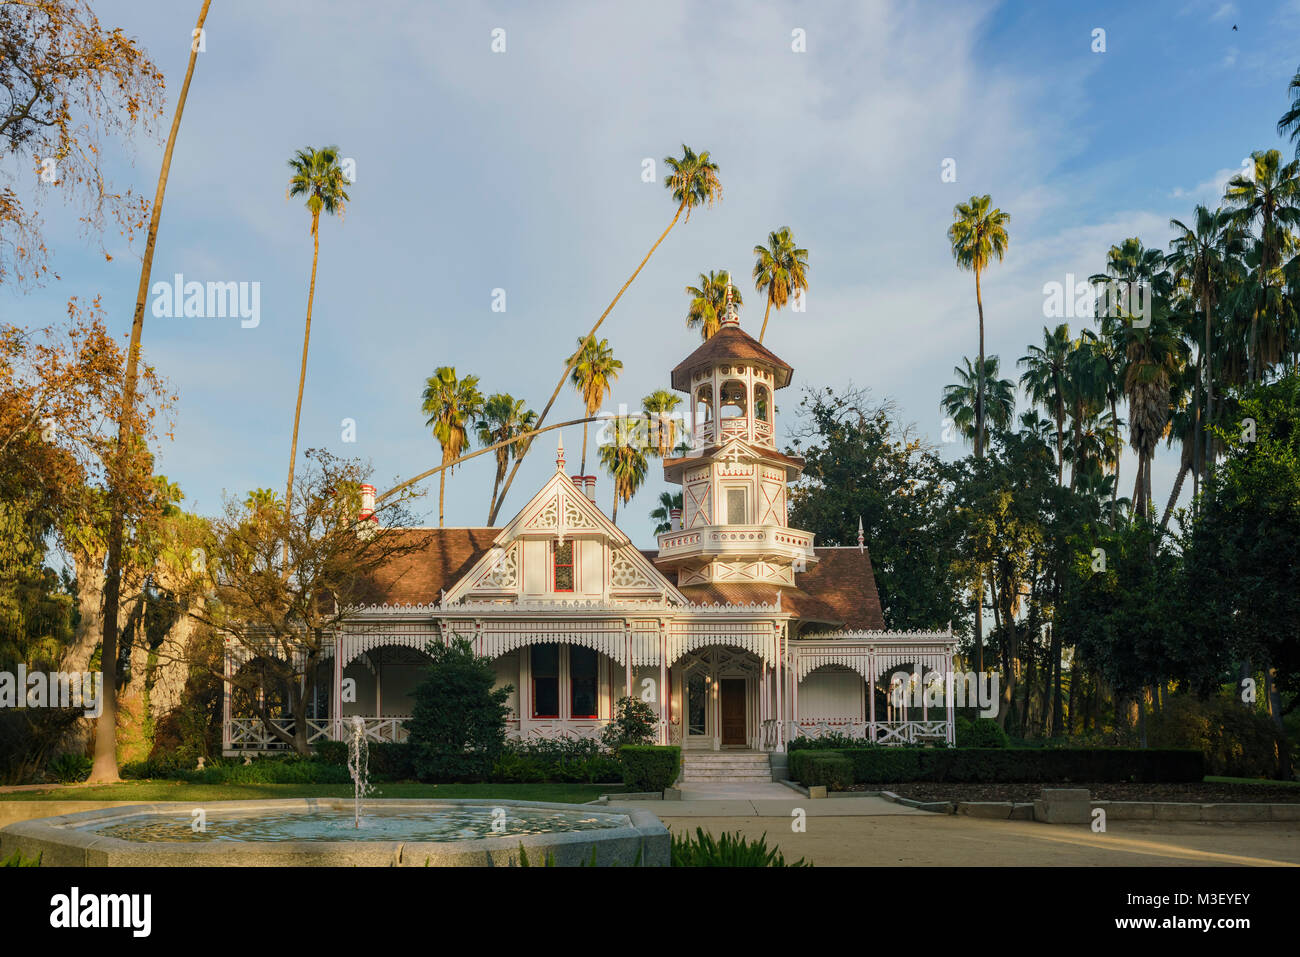 The beautiful Queen Anne Cottage at Los Angeles County Arboretum & Botanic… Stock Photo